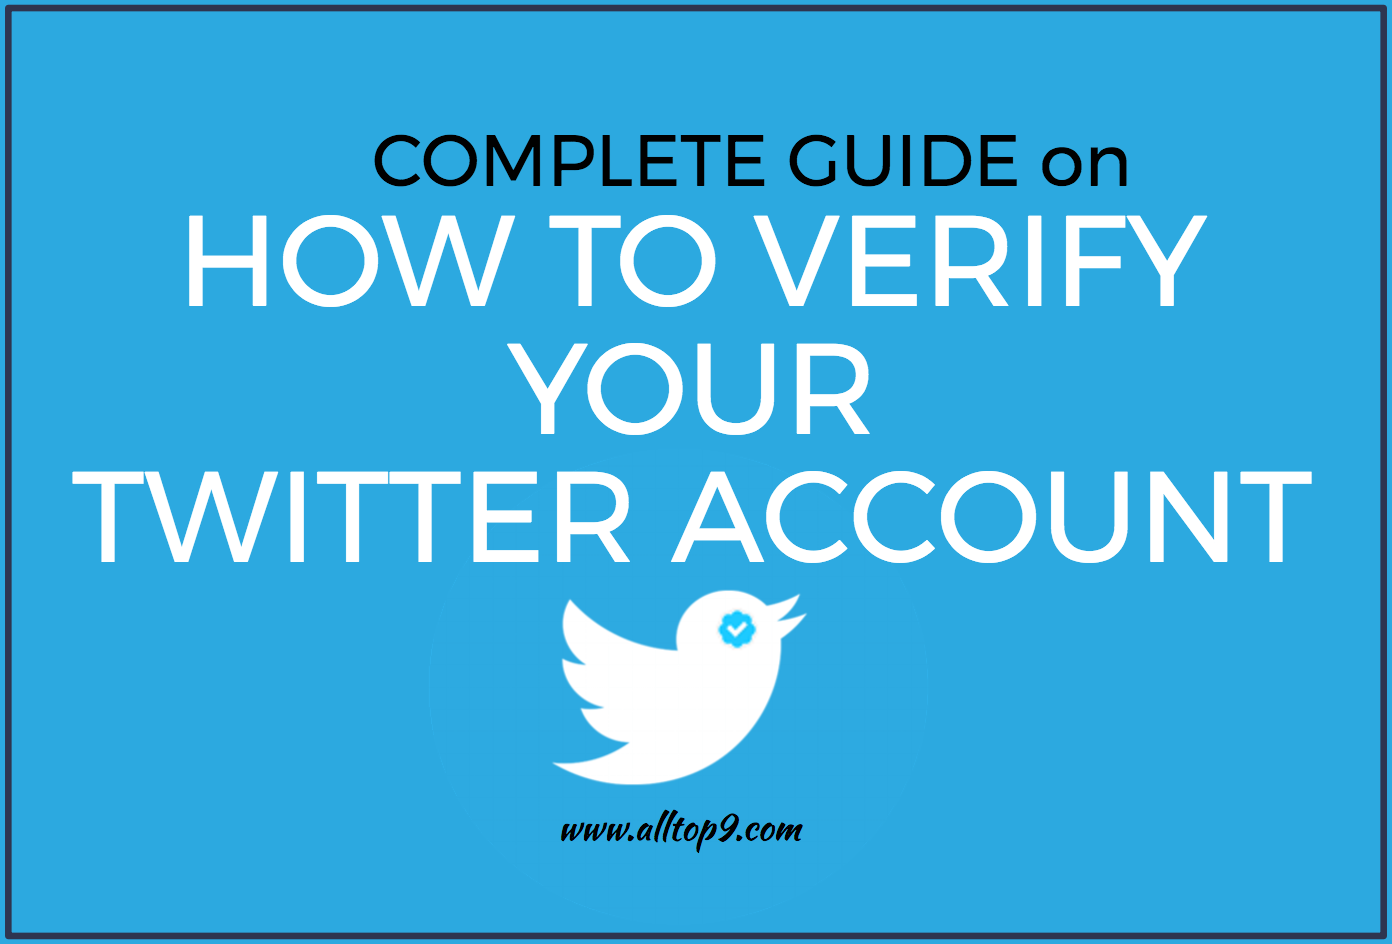 how-to-verify-my-twitter-account-online-free-with-blue-tick-mark